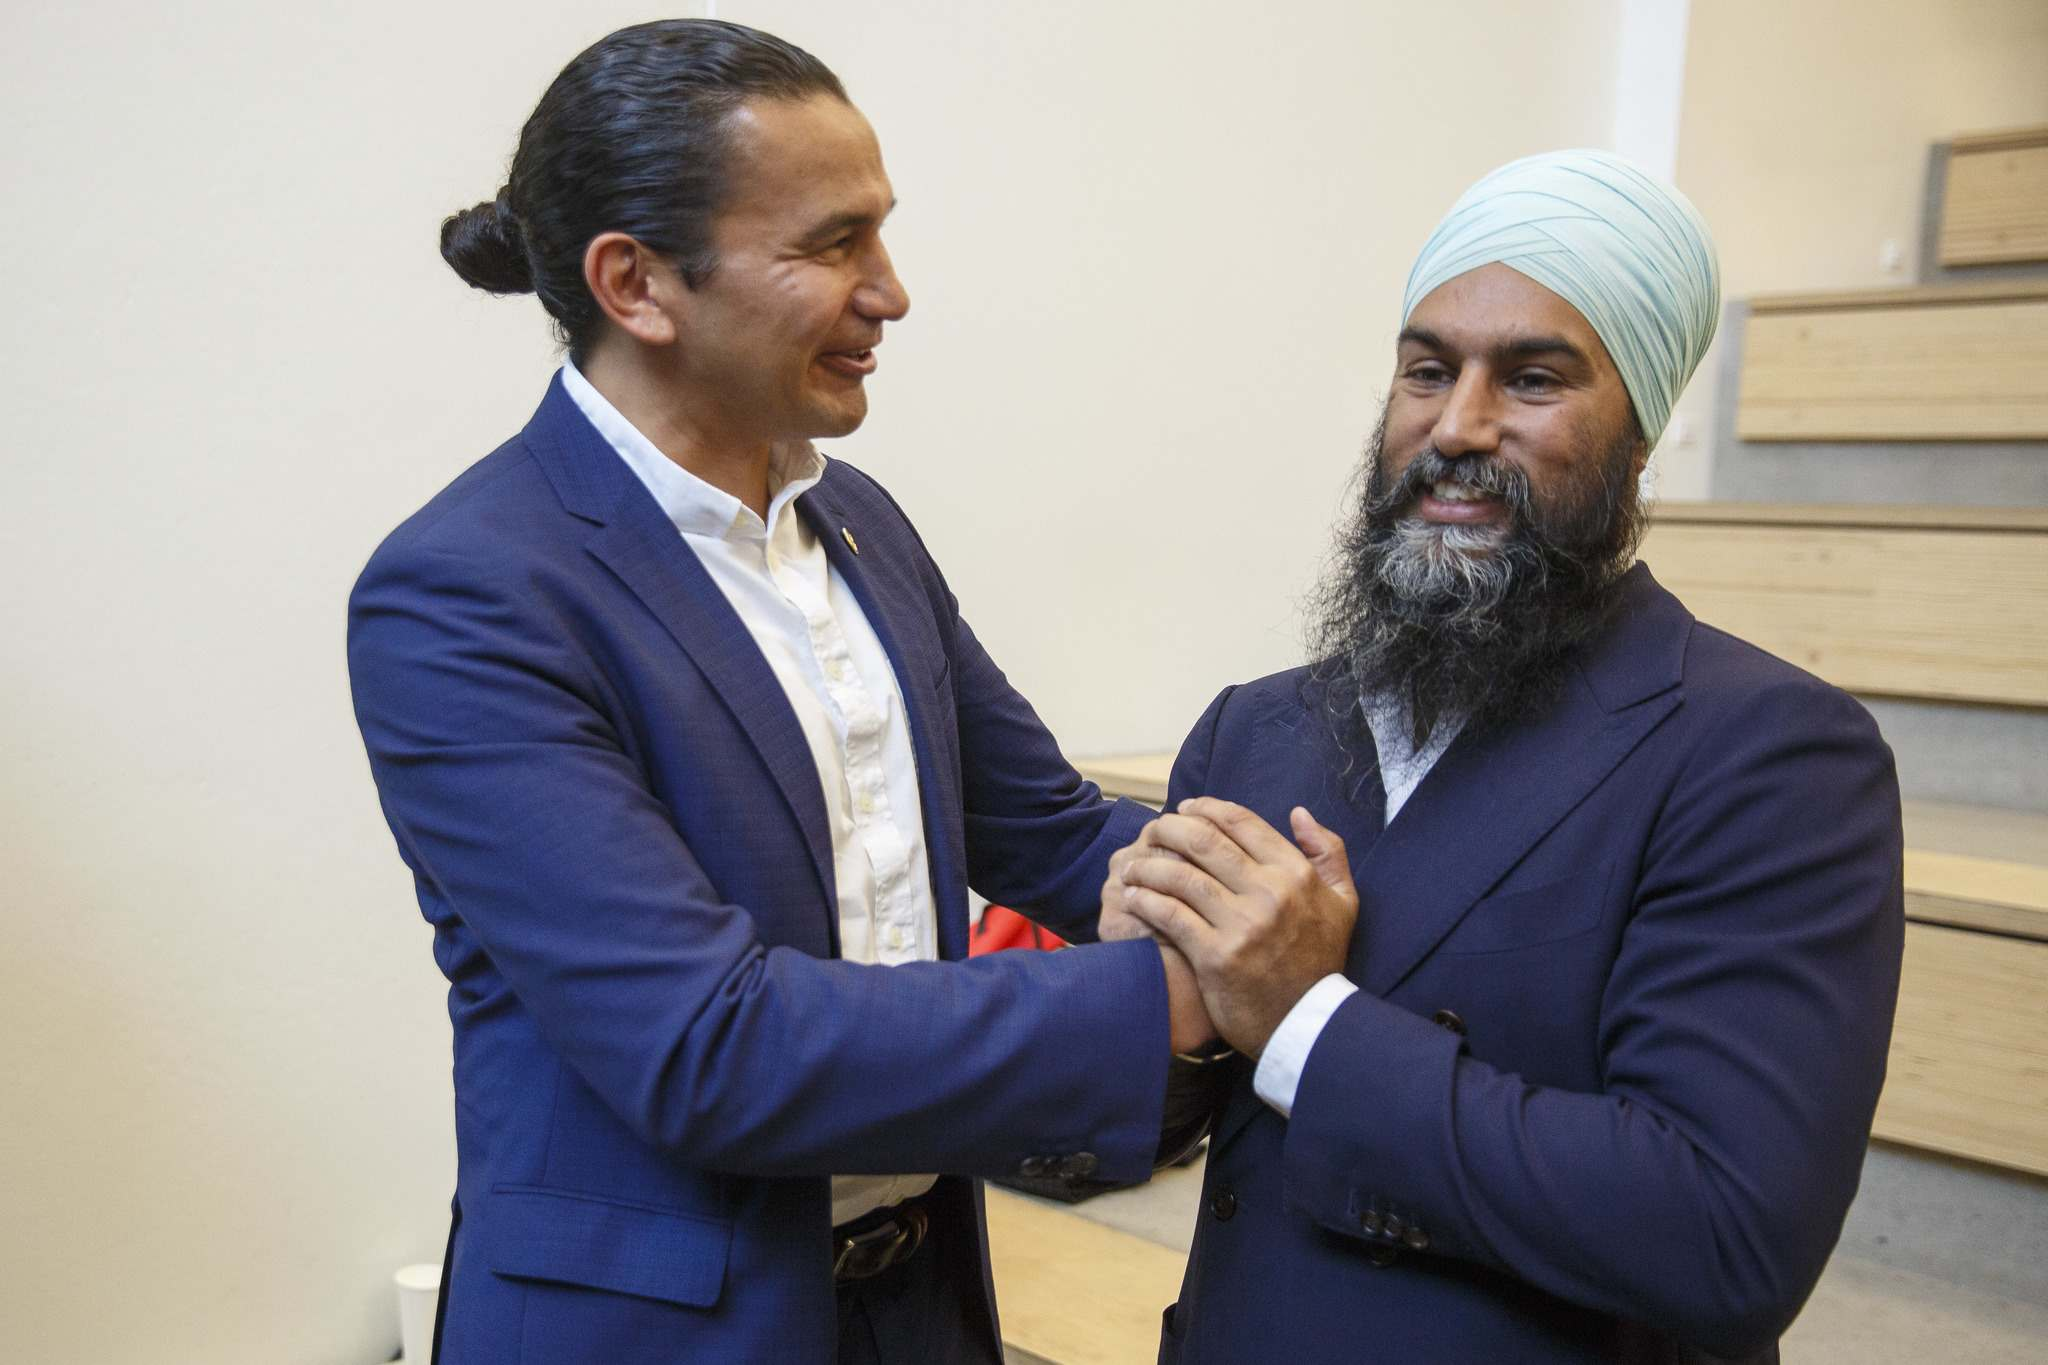 Provincial NDP Leader Wab Kinew chats with federal NDP Leader Jagmeet Singh Tuesday after Singh announced the NDP's plan to address the climate crisis and create green jobs during a stop at the University of Winnipeg. (Mike Deal / Winnipeg Free Press)</p>